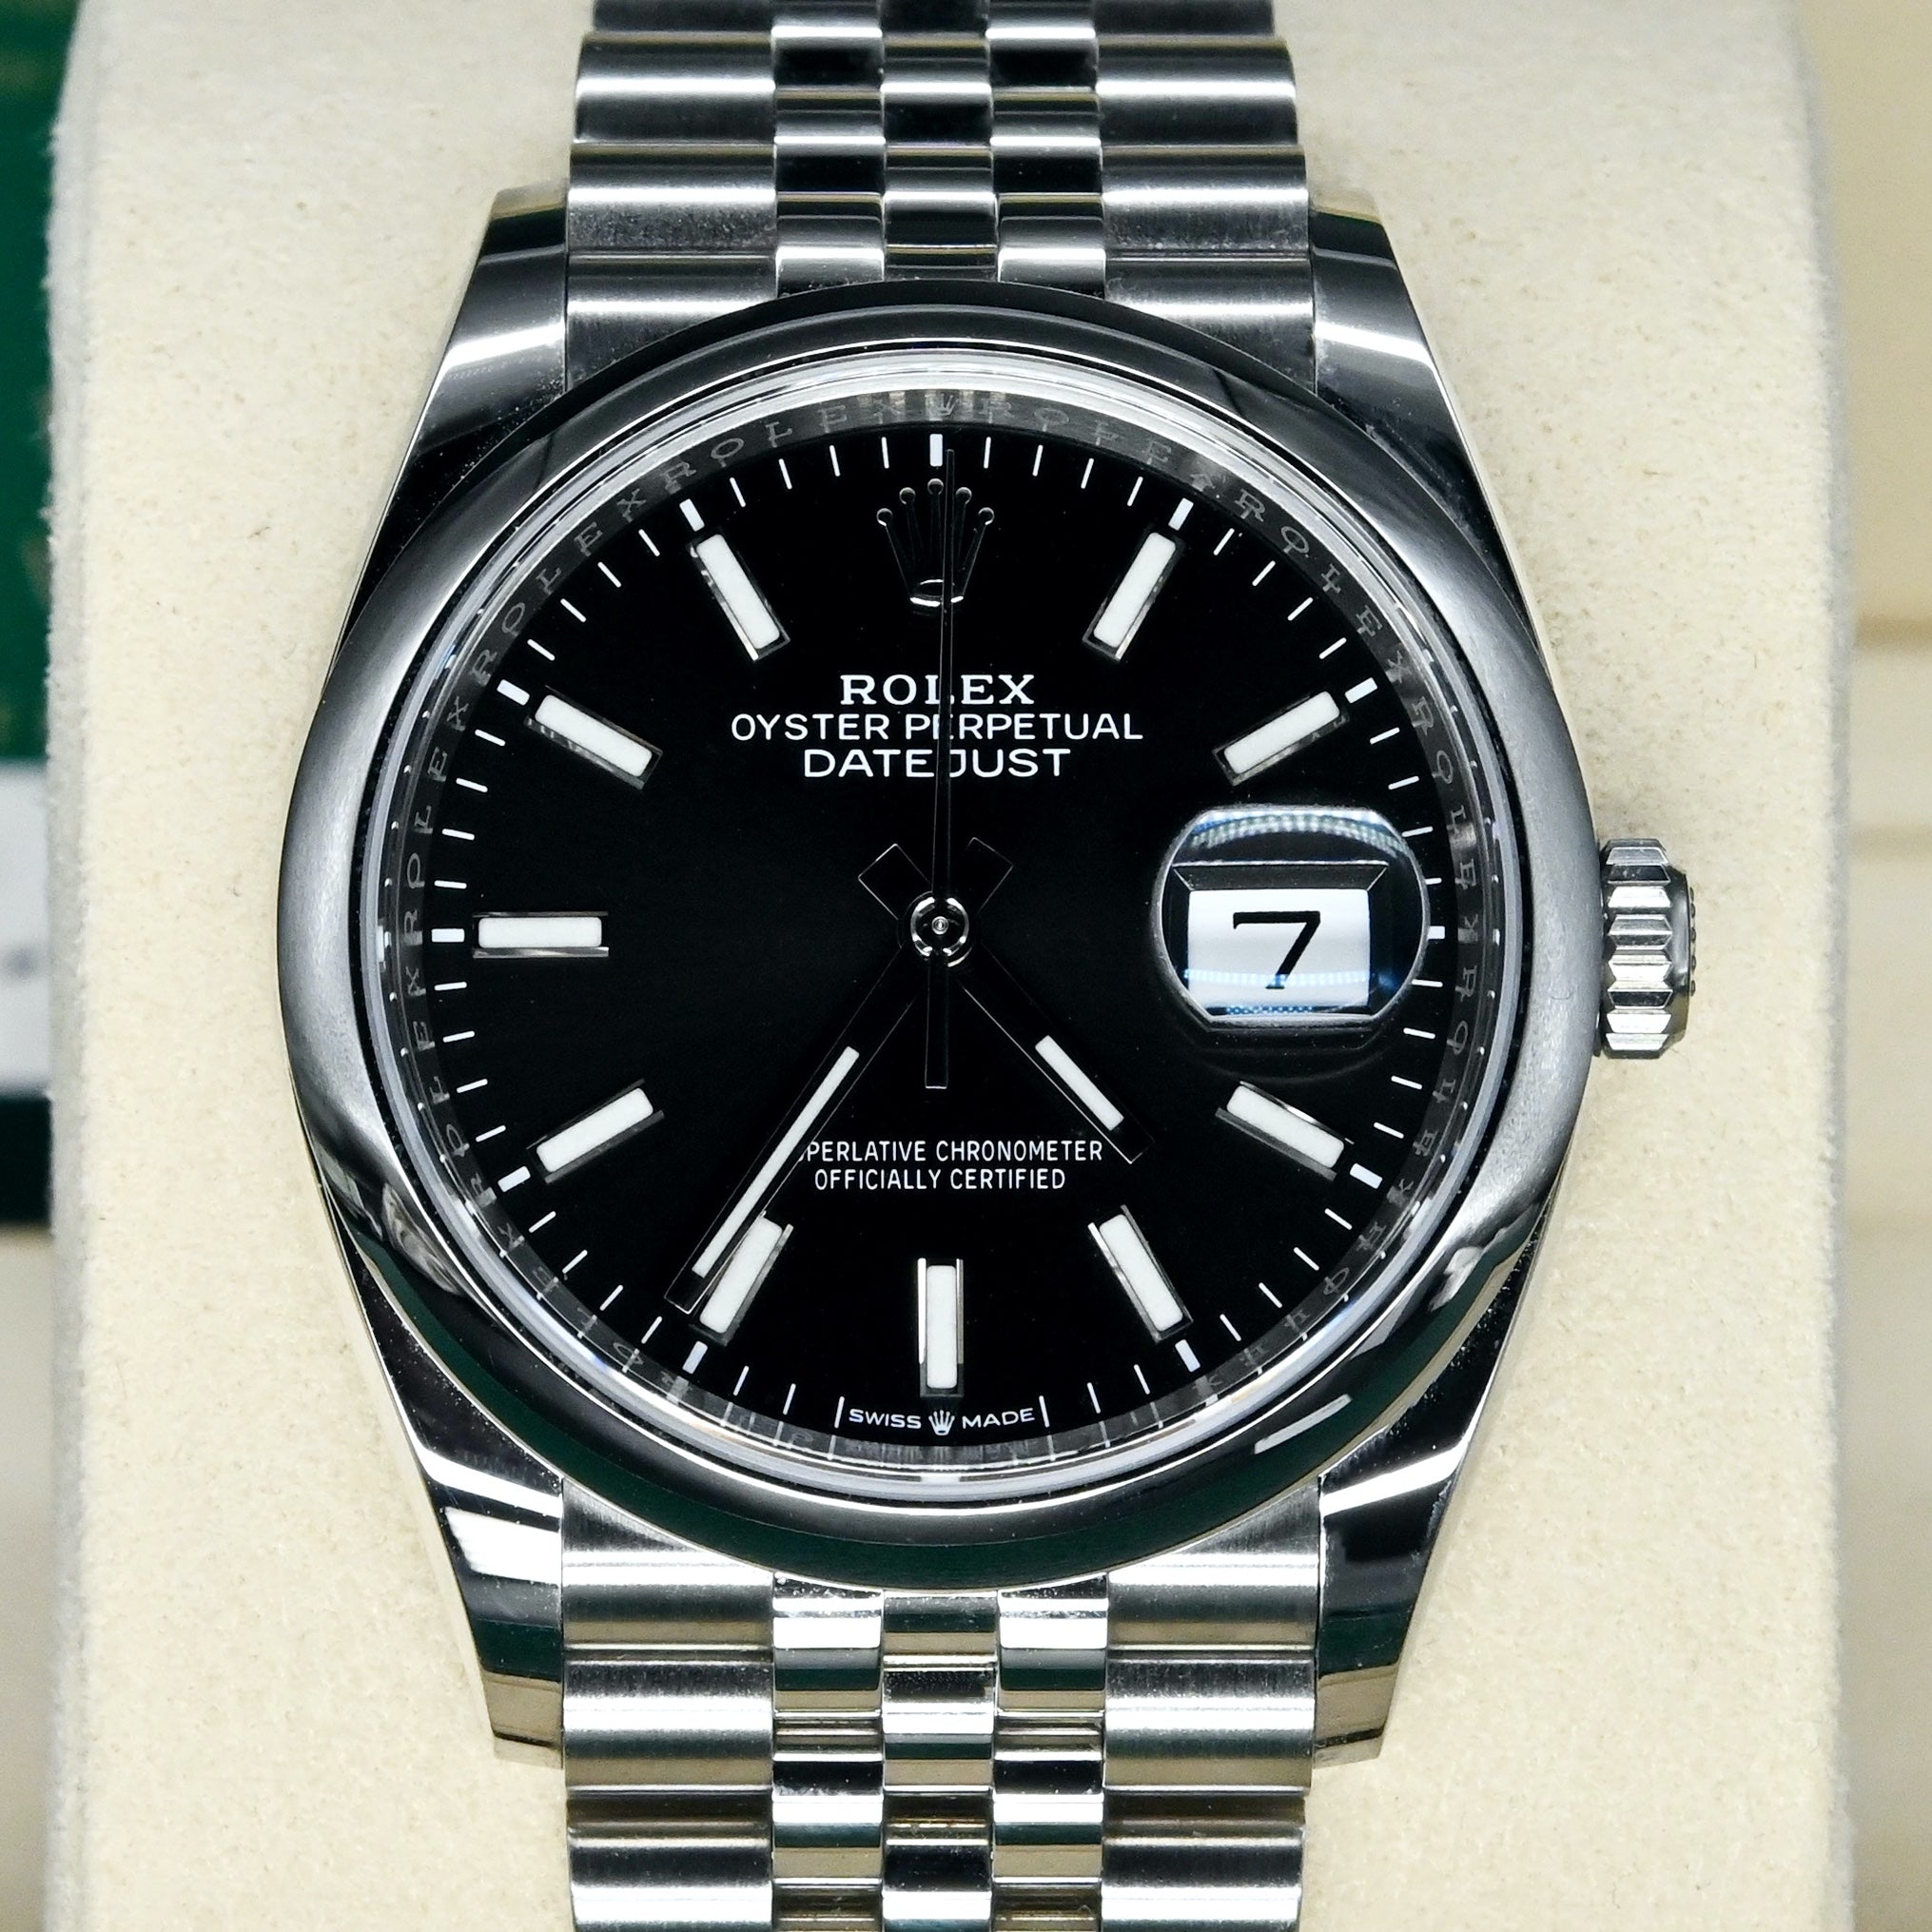 [Pre-Owned Watch] Rolex Datejust 36 36mm 126200 Black Index Dial (Jubilee Bracelet) (888)